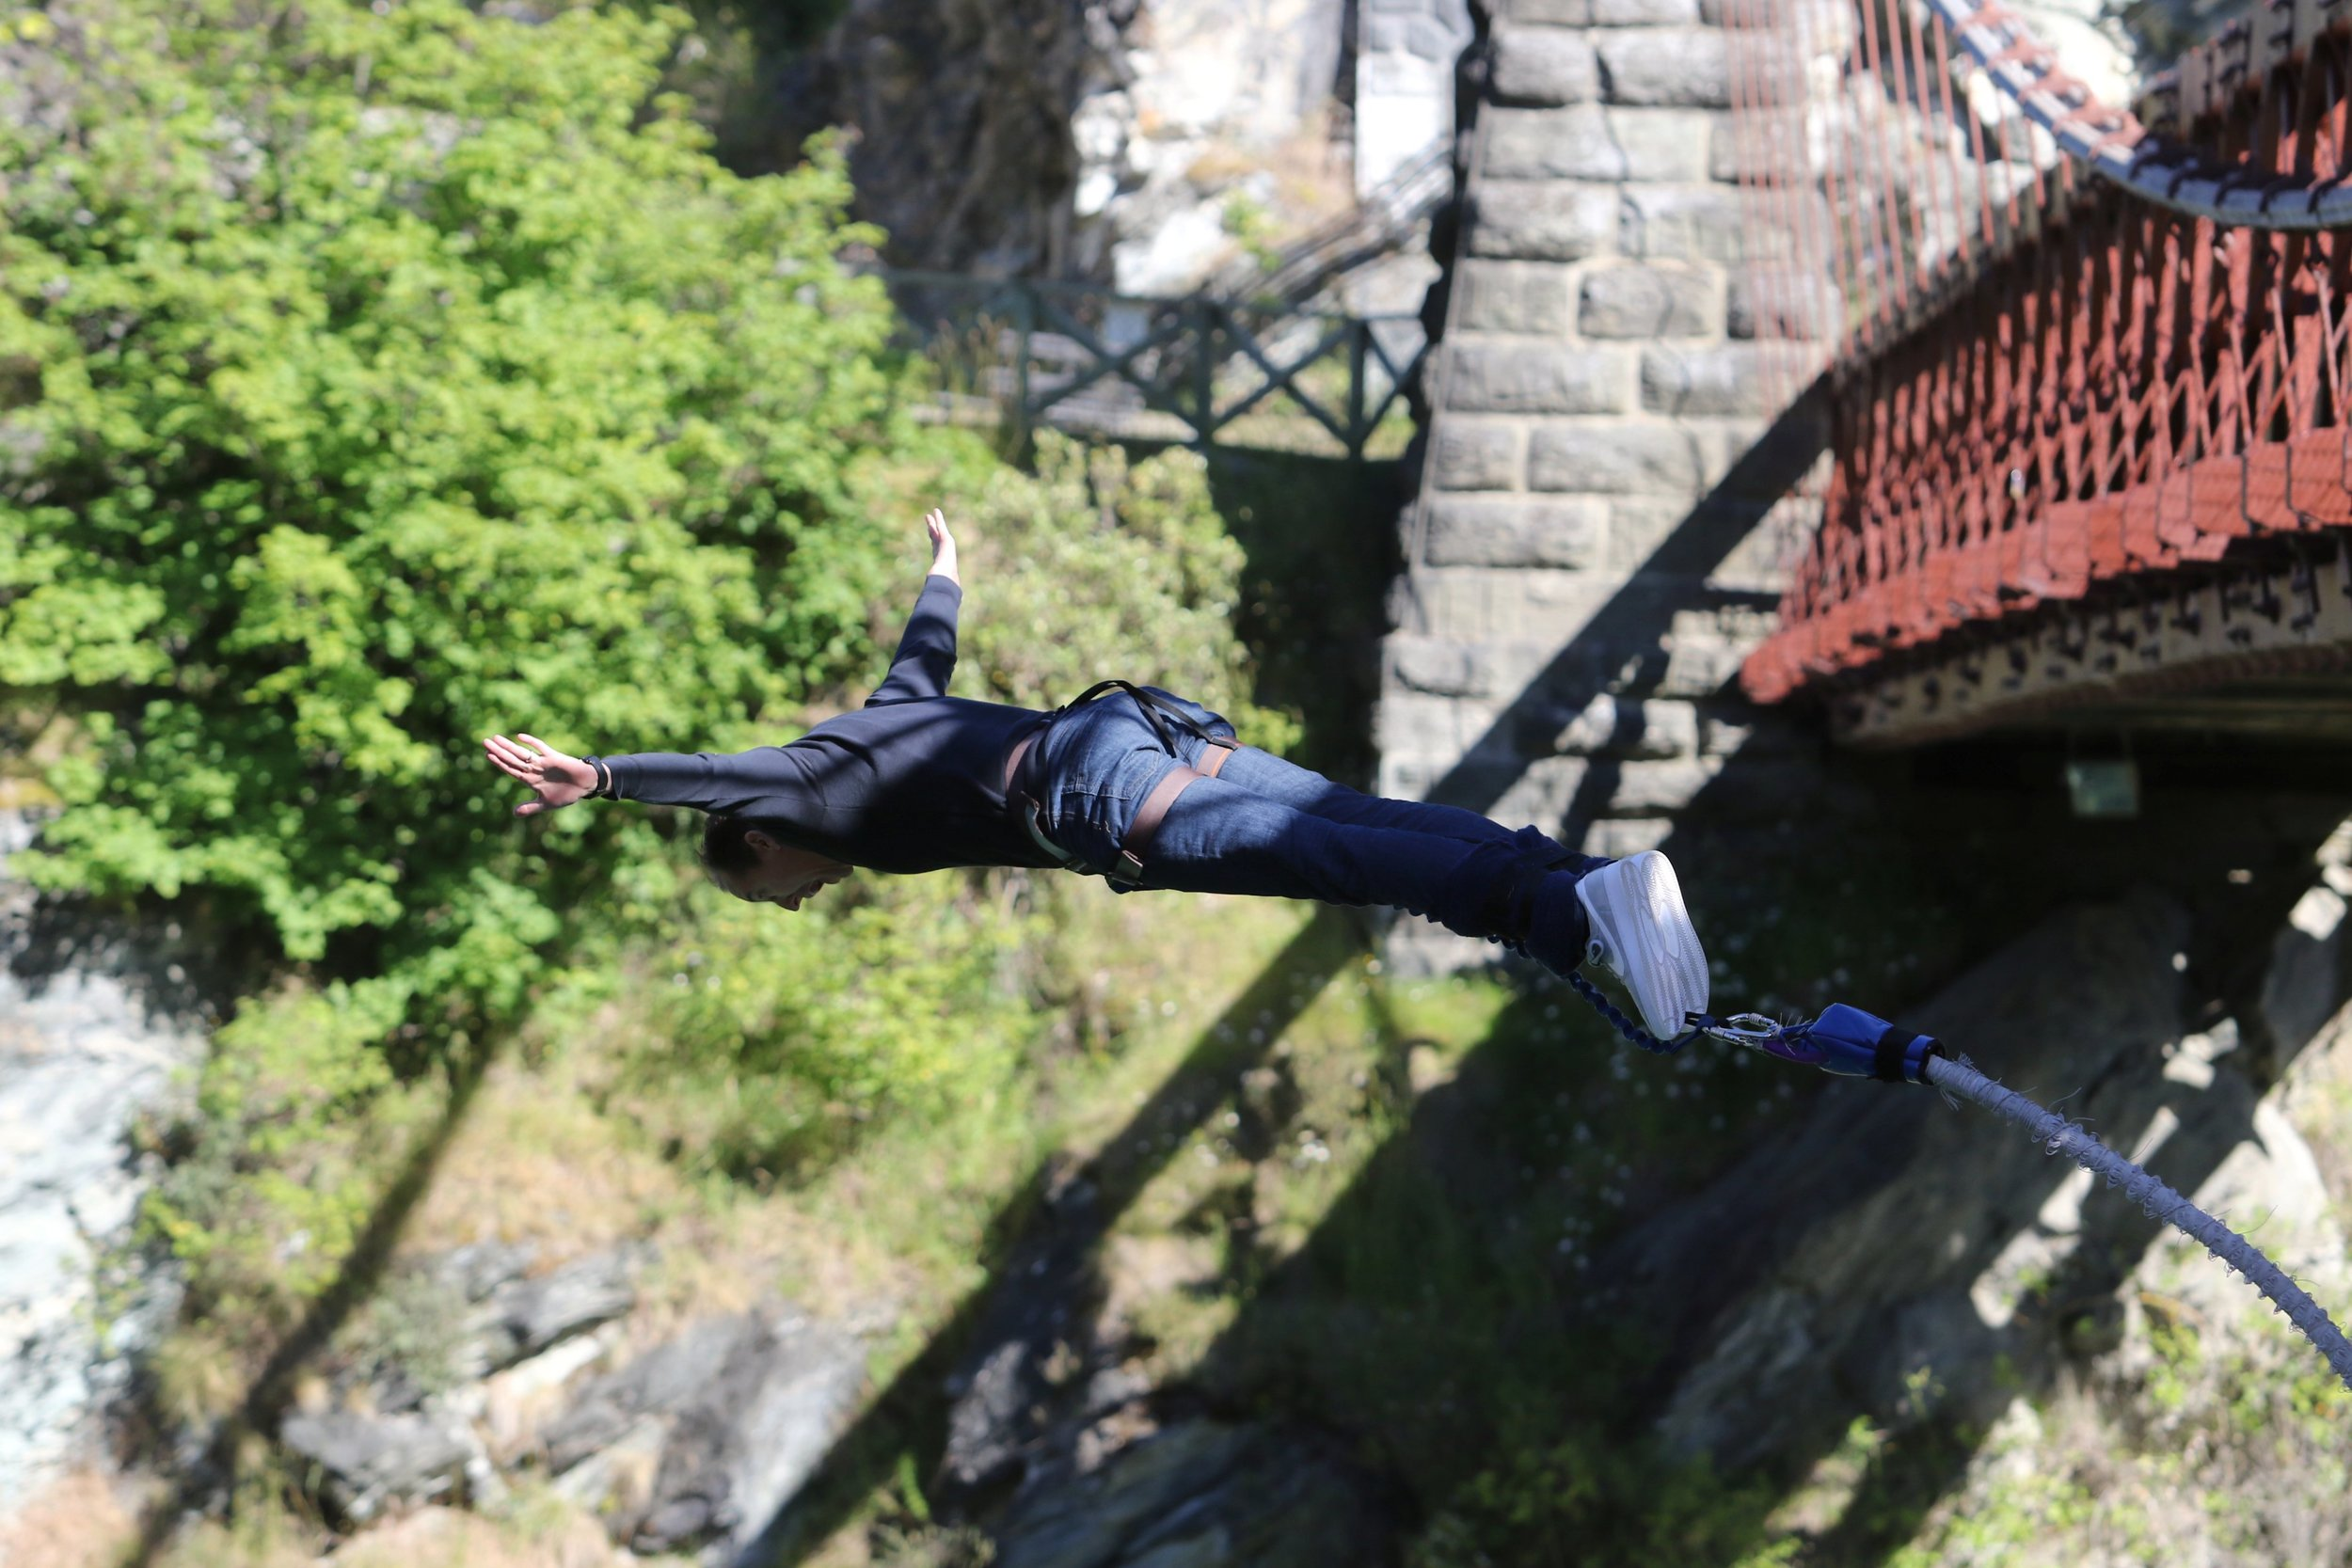 johnbungijump